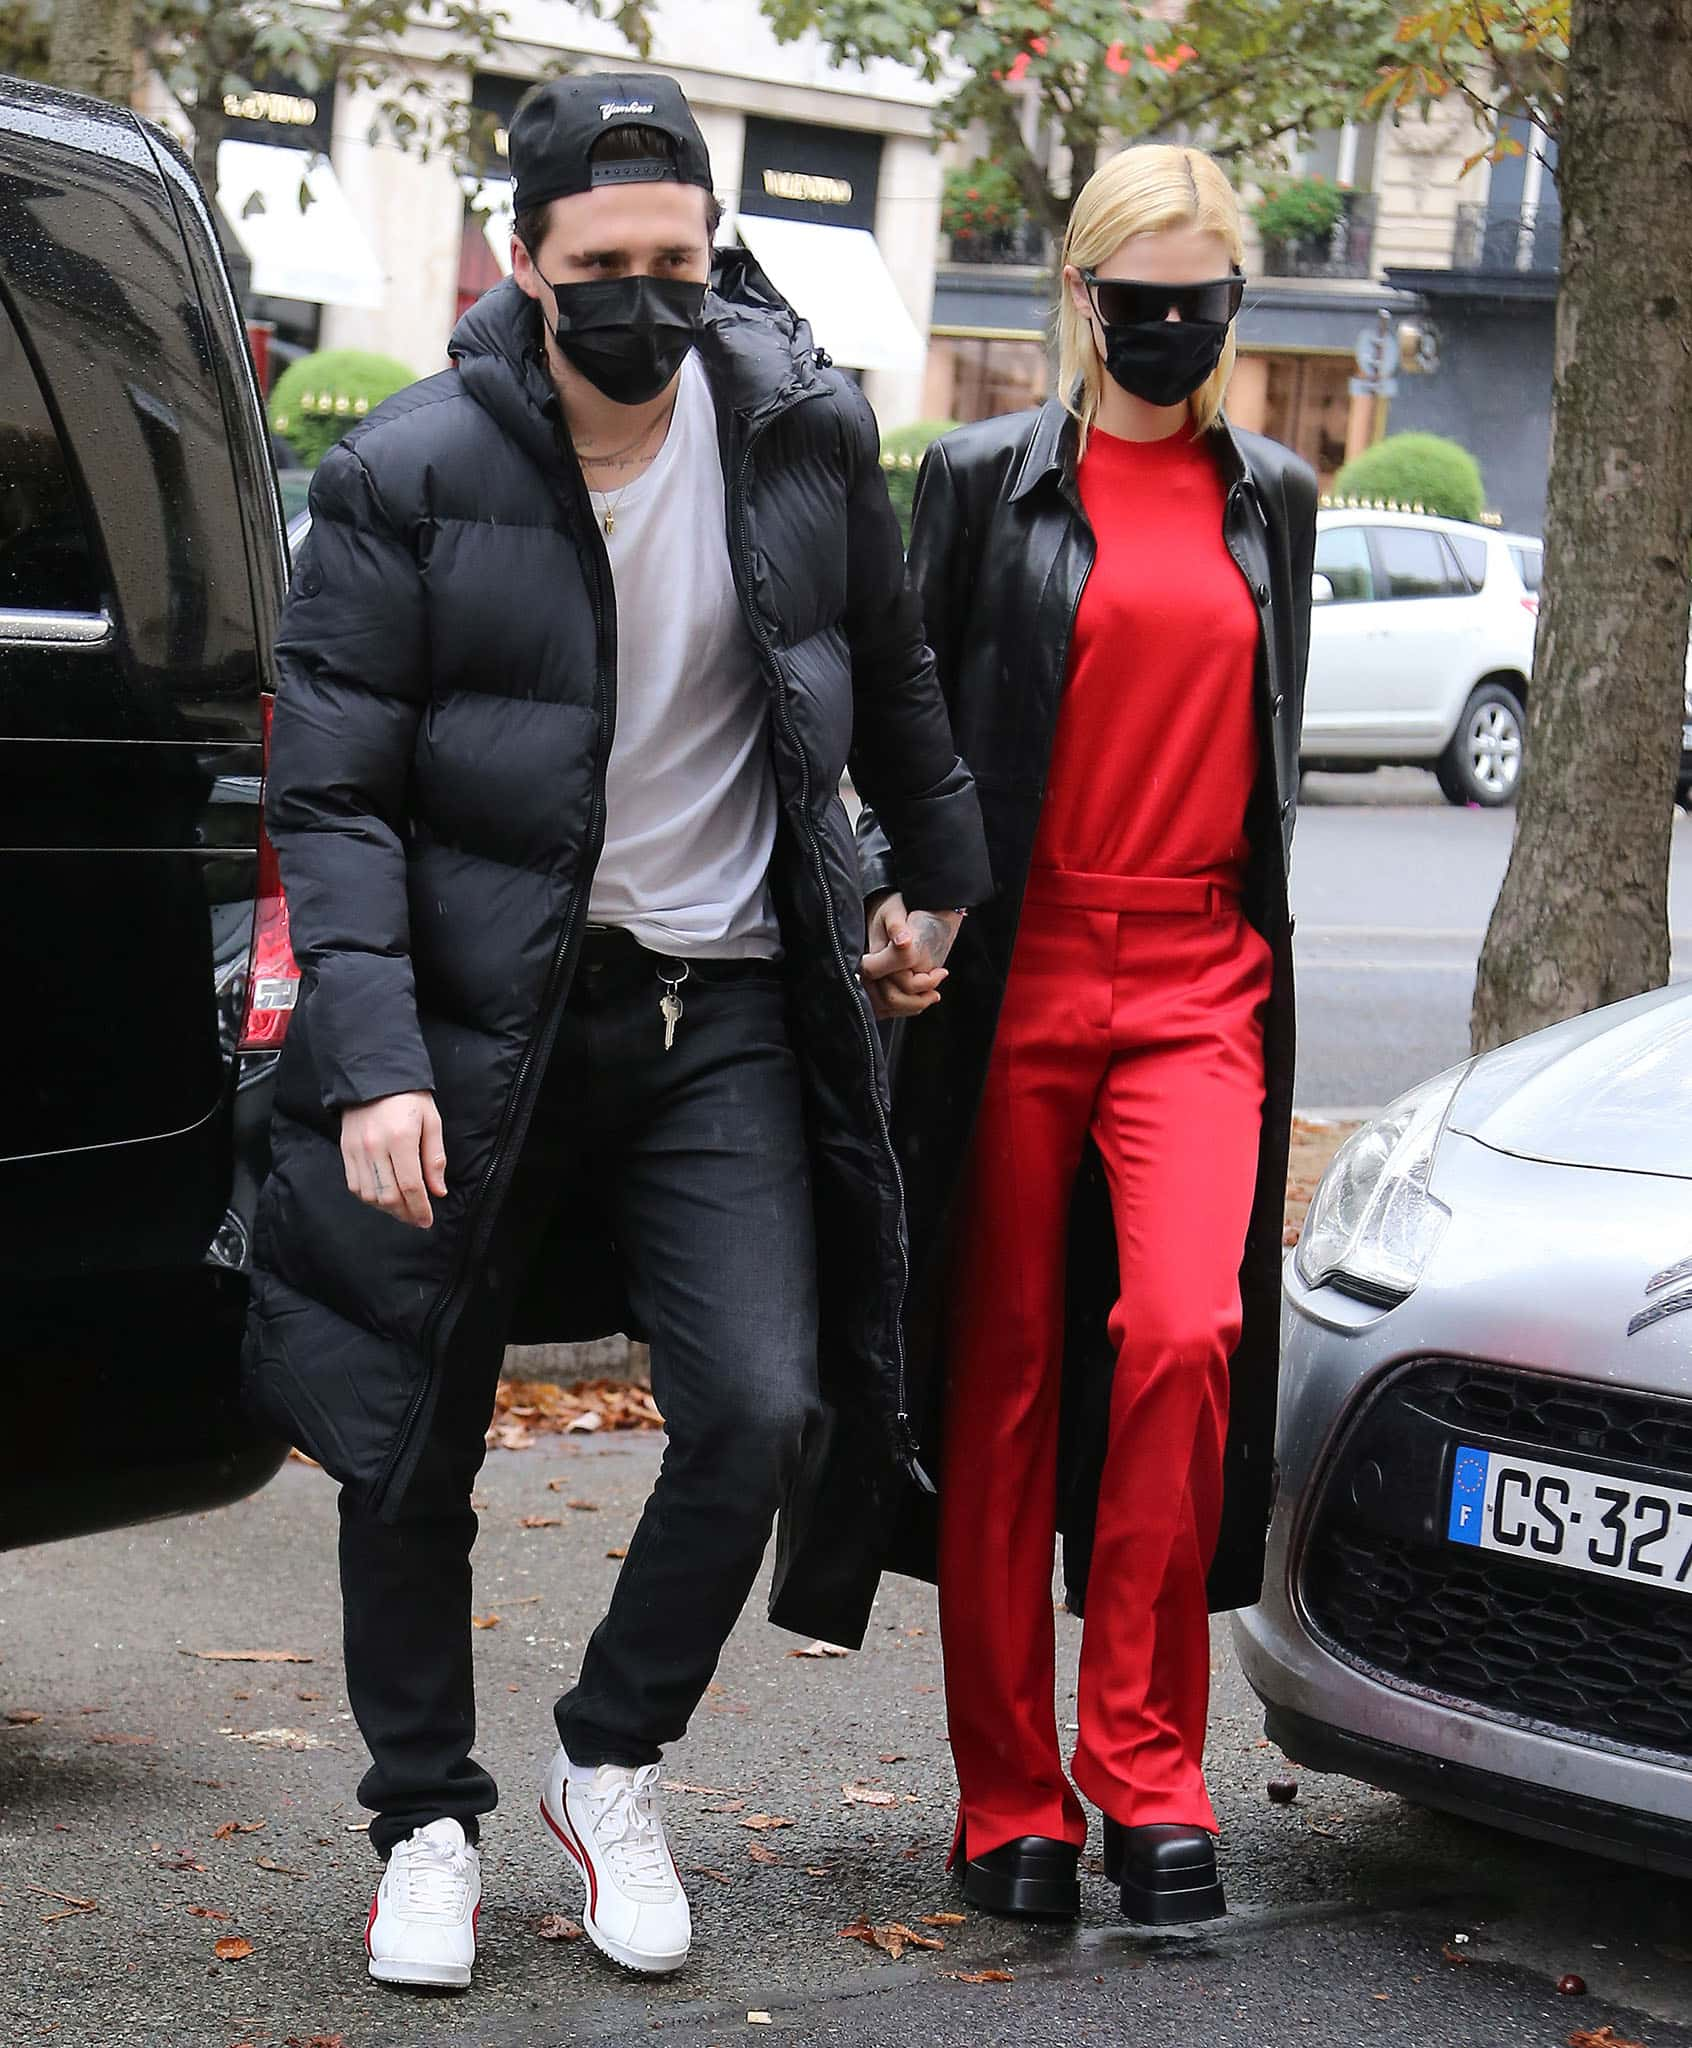 Nicola Peltz holds fiancé Brooklyn Beckham's hand while clad in coordinating red top and pants in Paris on October 1, 2021